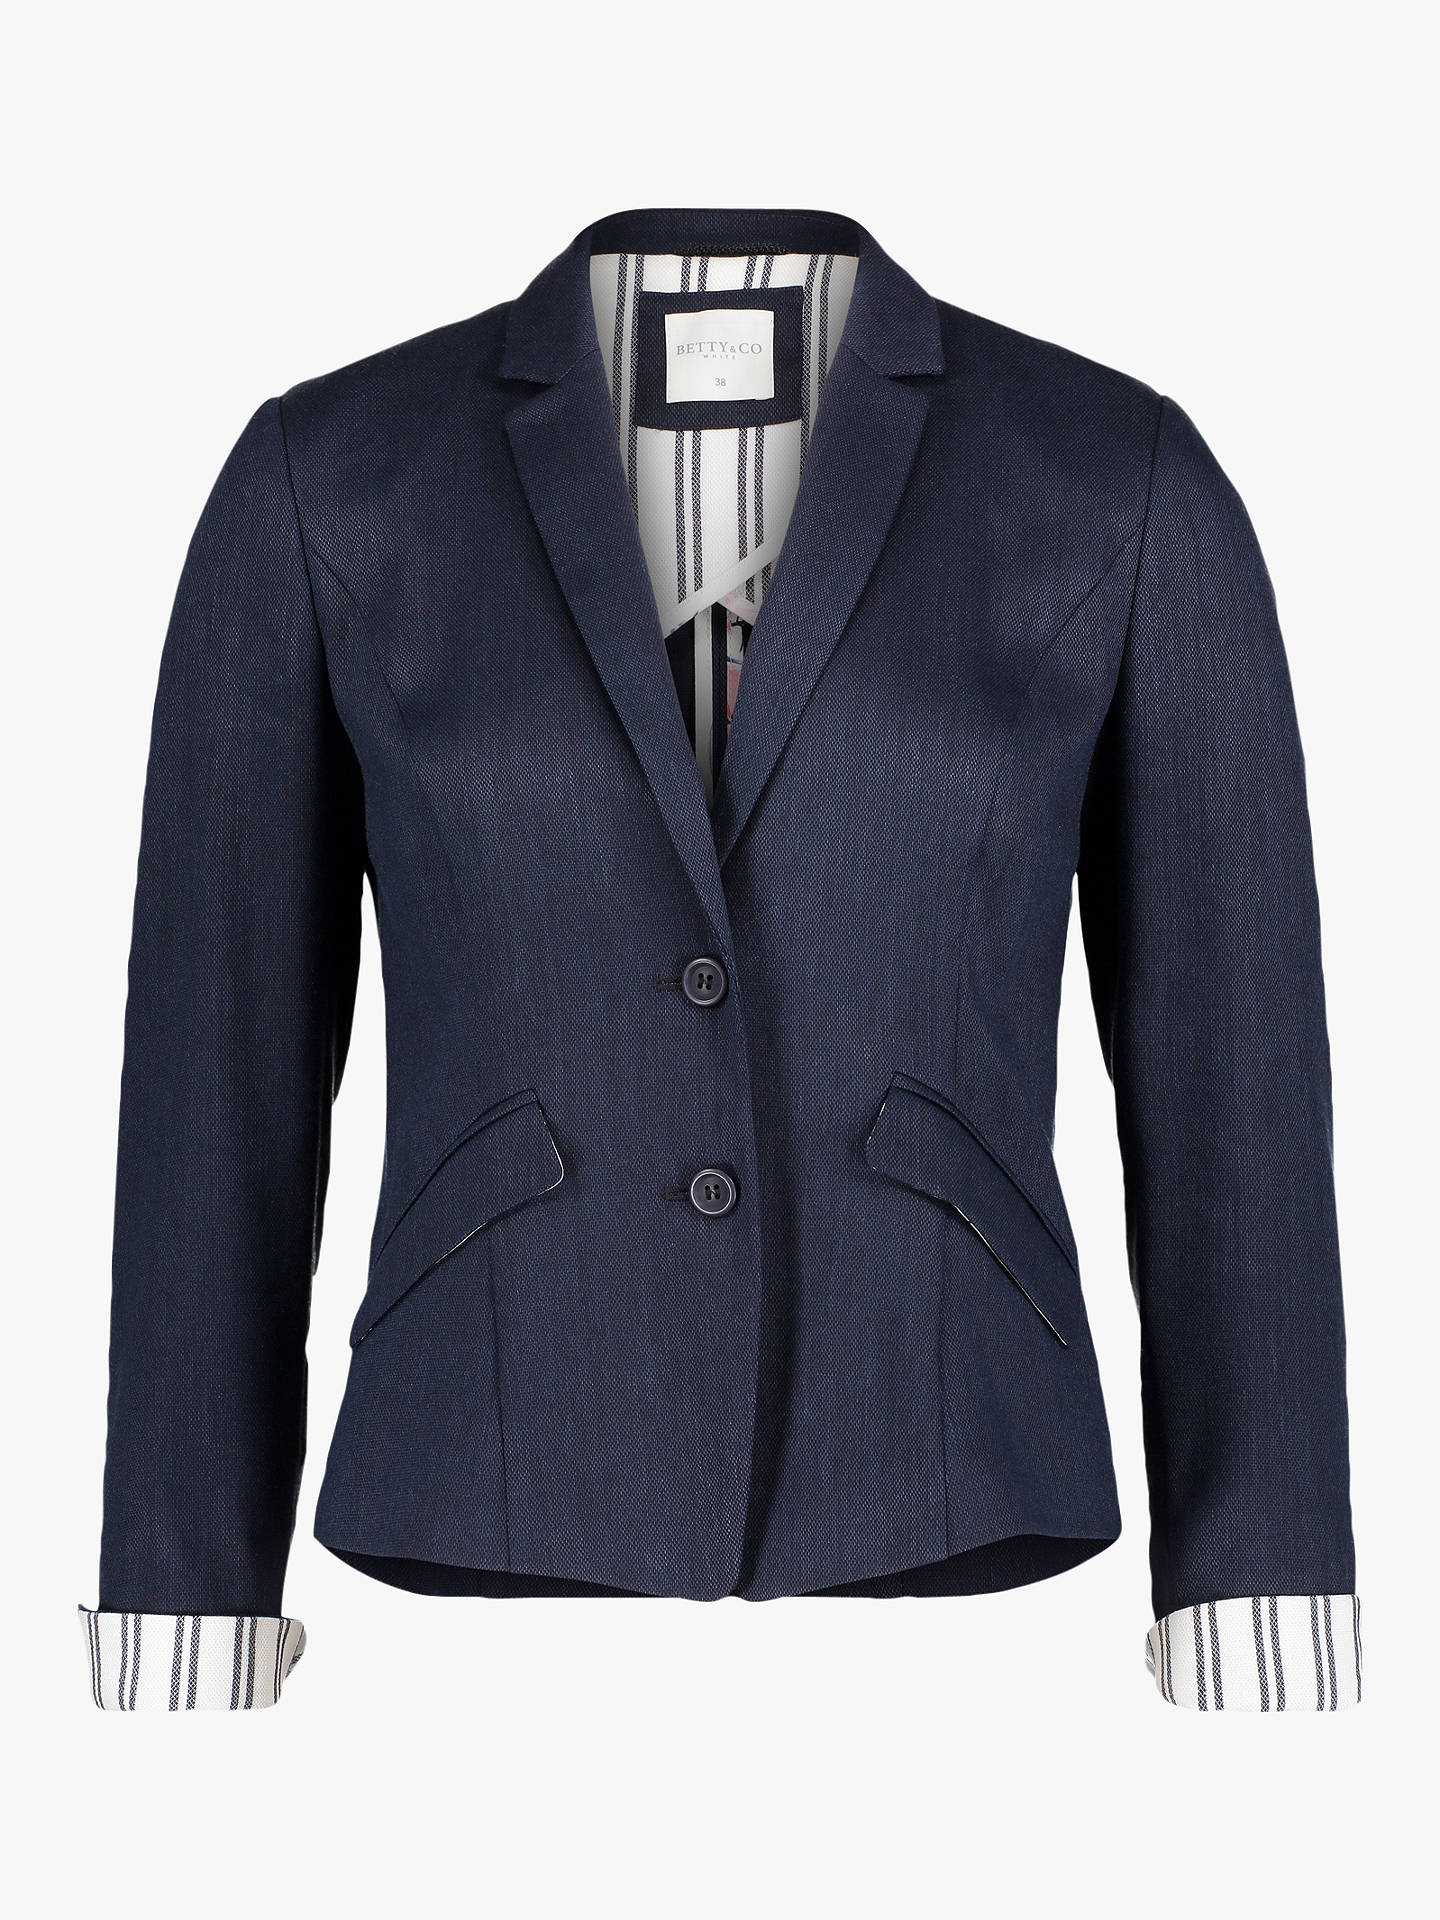 Buy Betty & Co. Tailored Blazer, Navy Blue, 14 Online at johnlewis.com